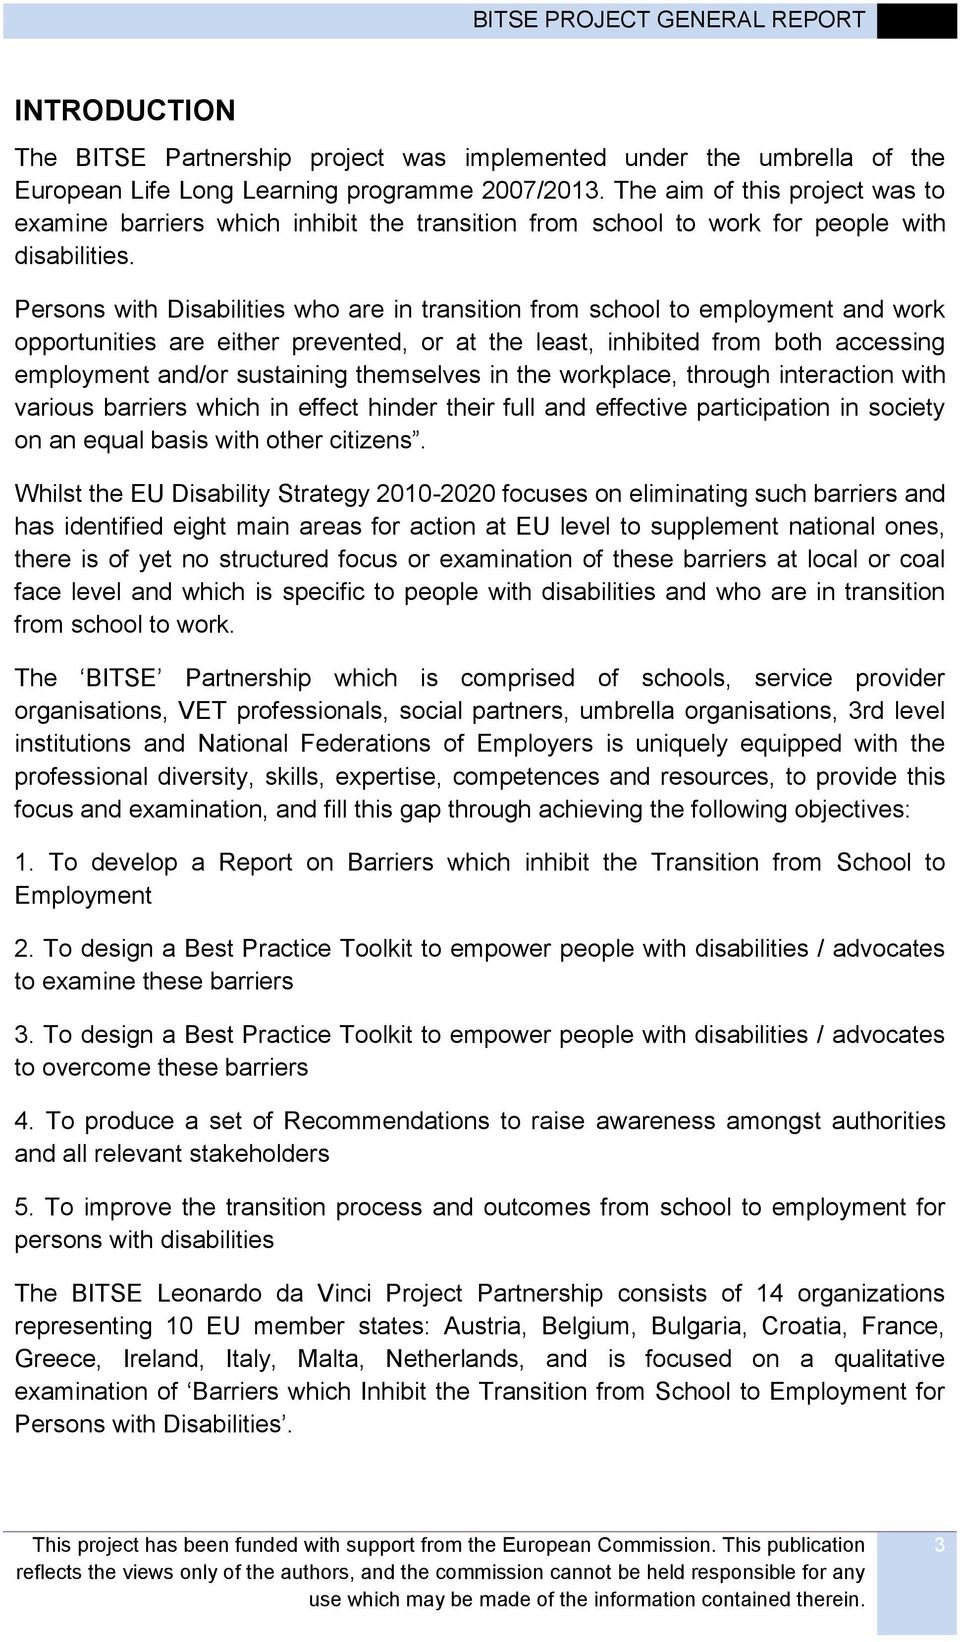 Persons with Disabilities who are in transition from school to employment and work opportunities are either prevented, or at the least, inhibited from both accessing employment and/or sustaining